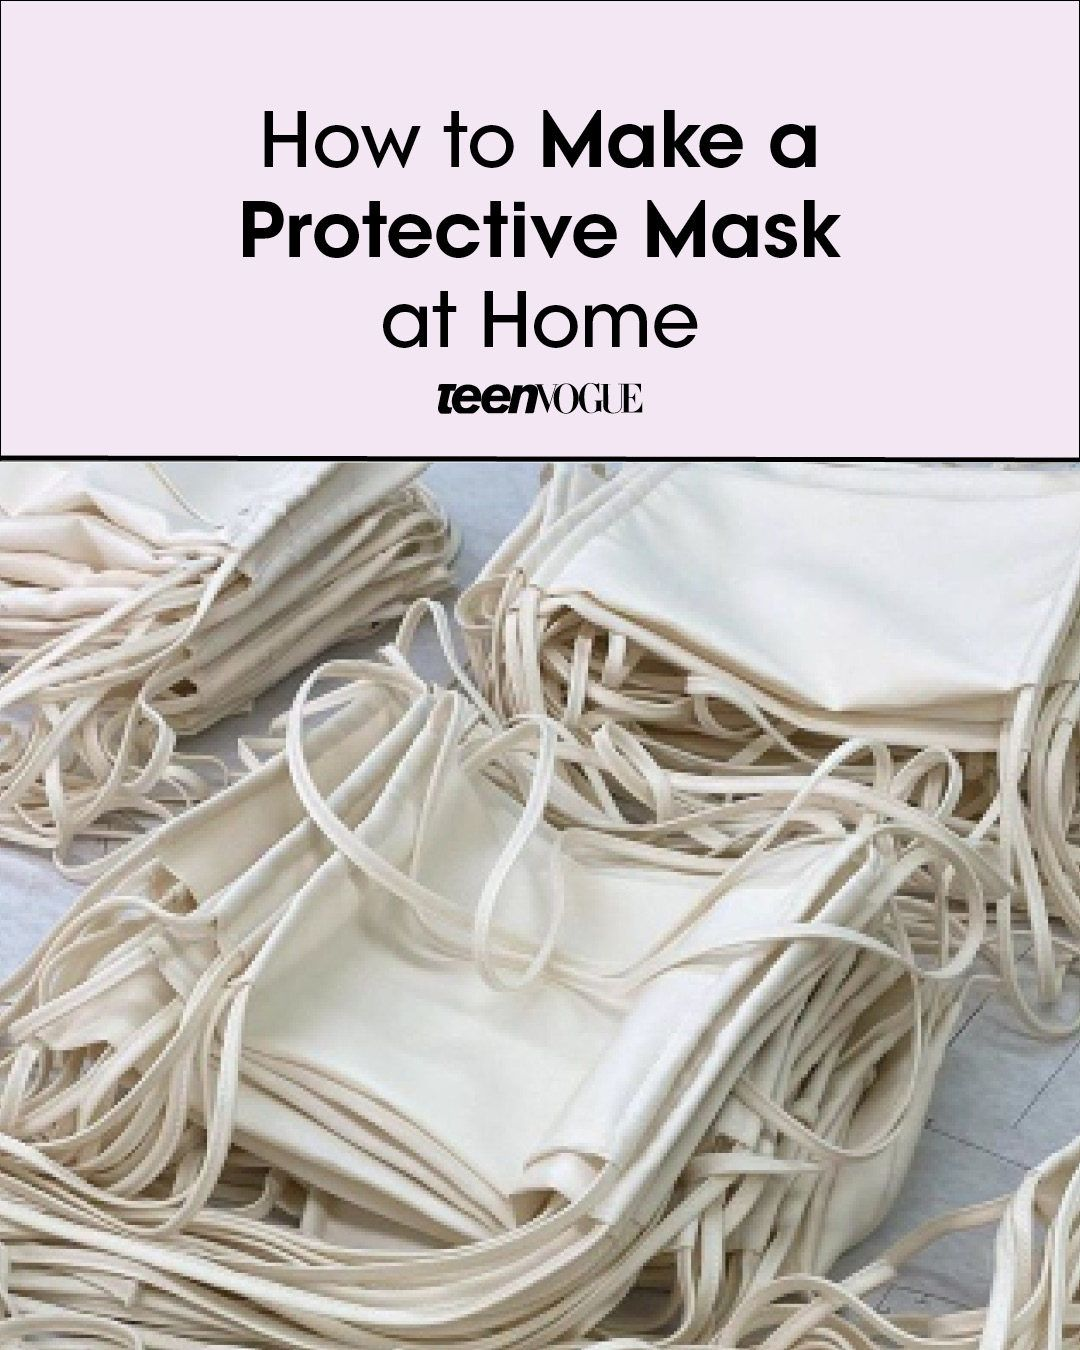 How to Make Your Own Protective Mask at Home in 2020